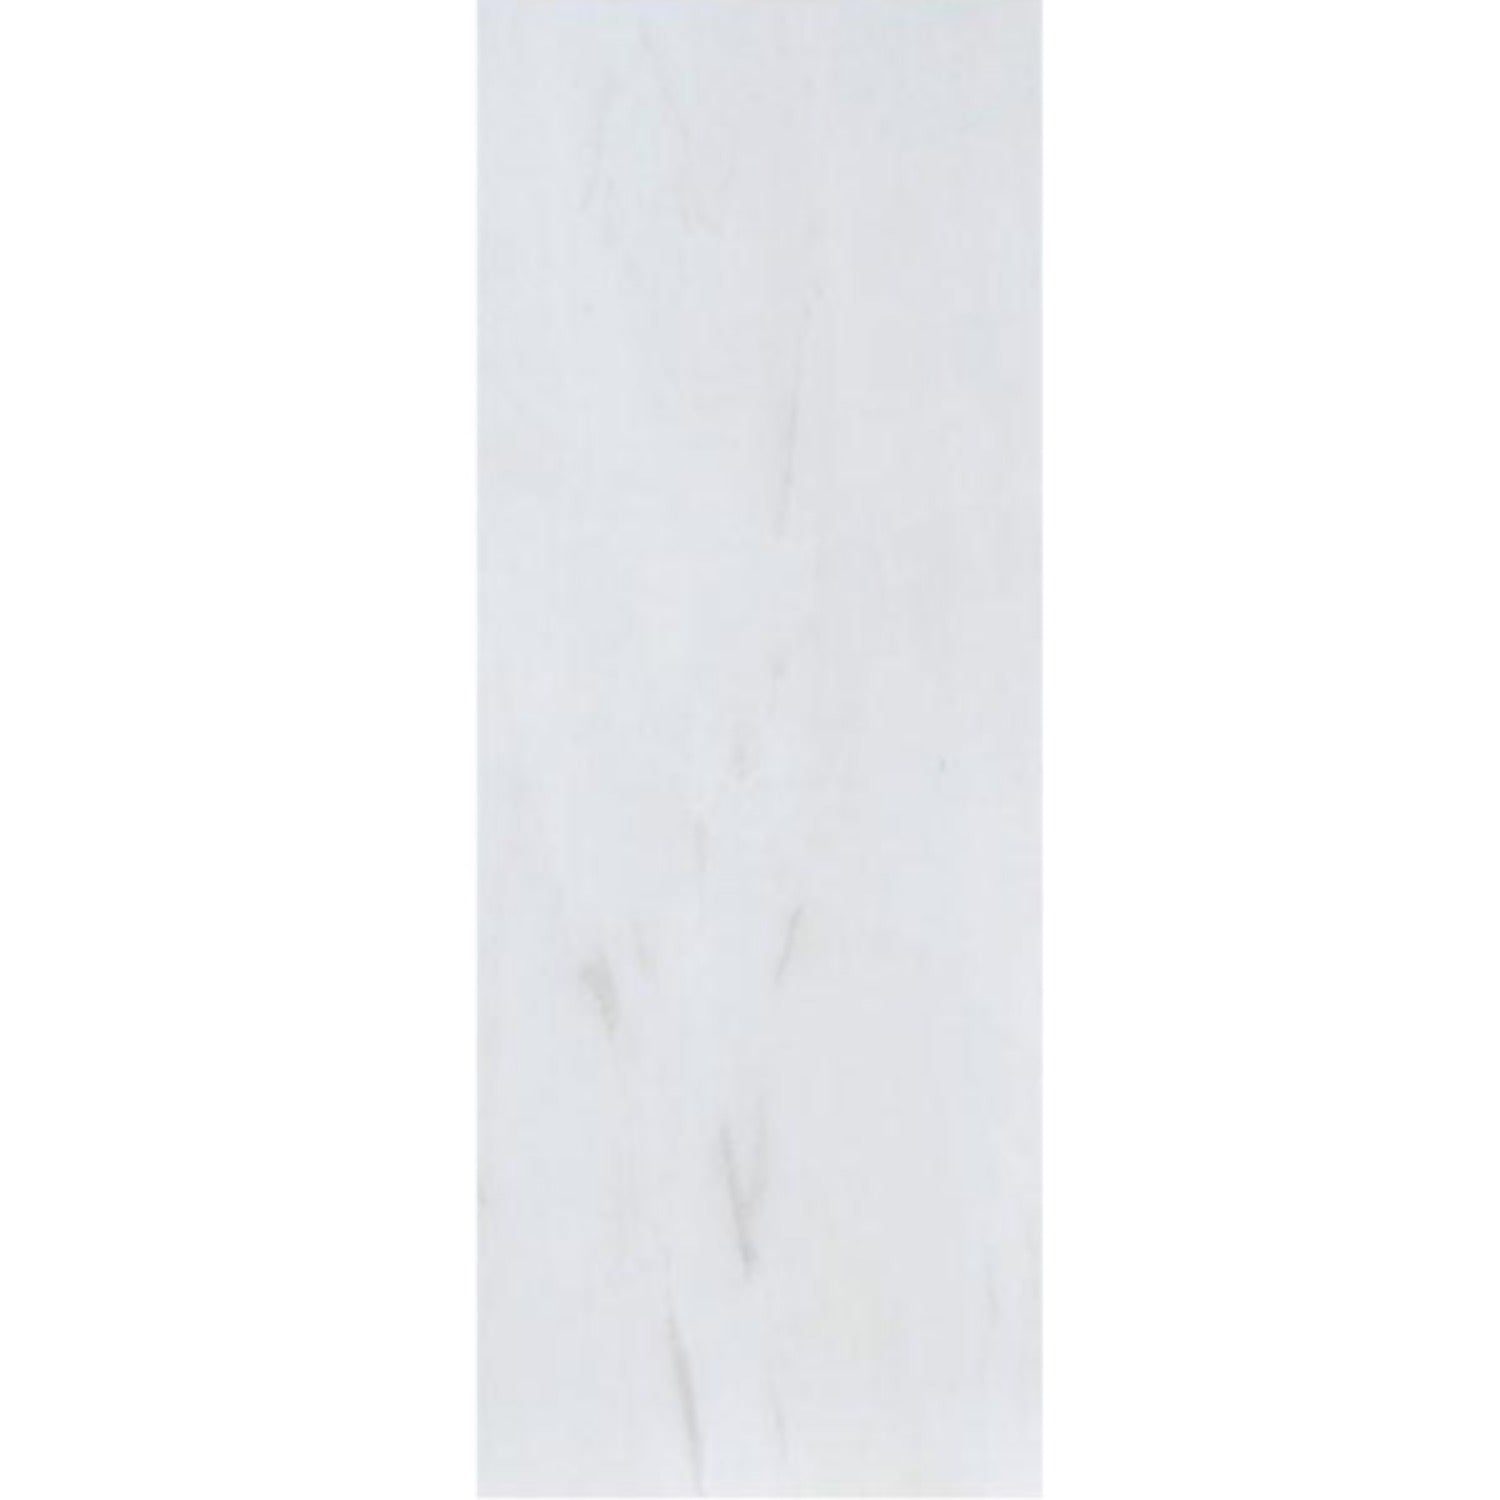 Dolomite 3x6 Polished Marble Tile